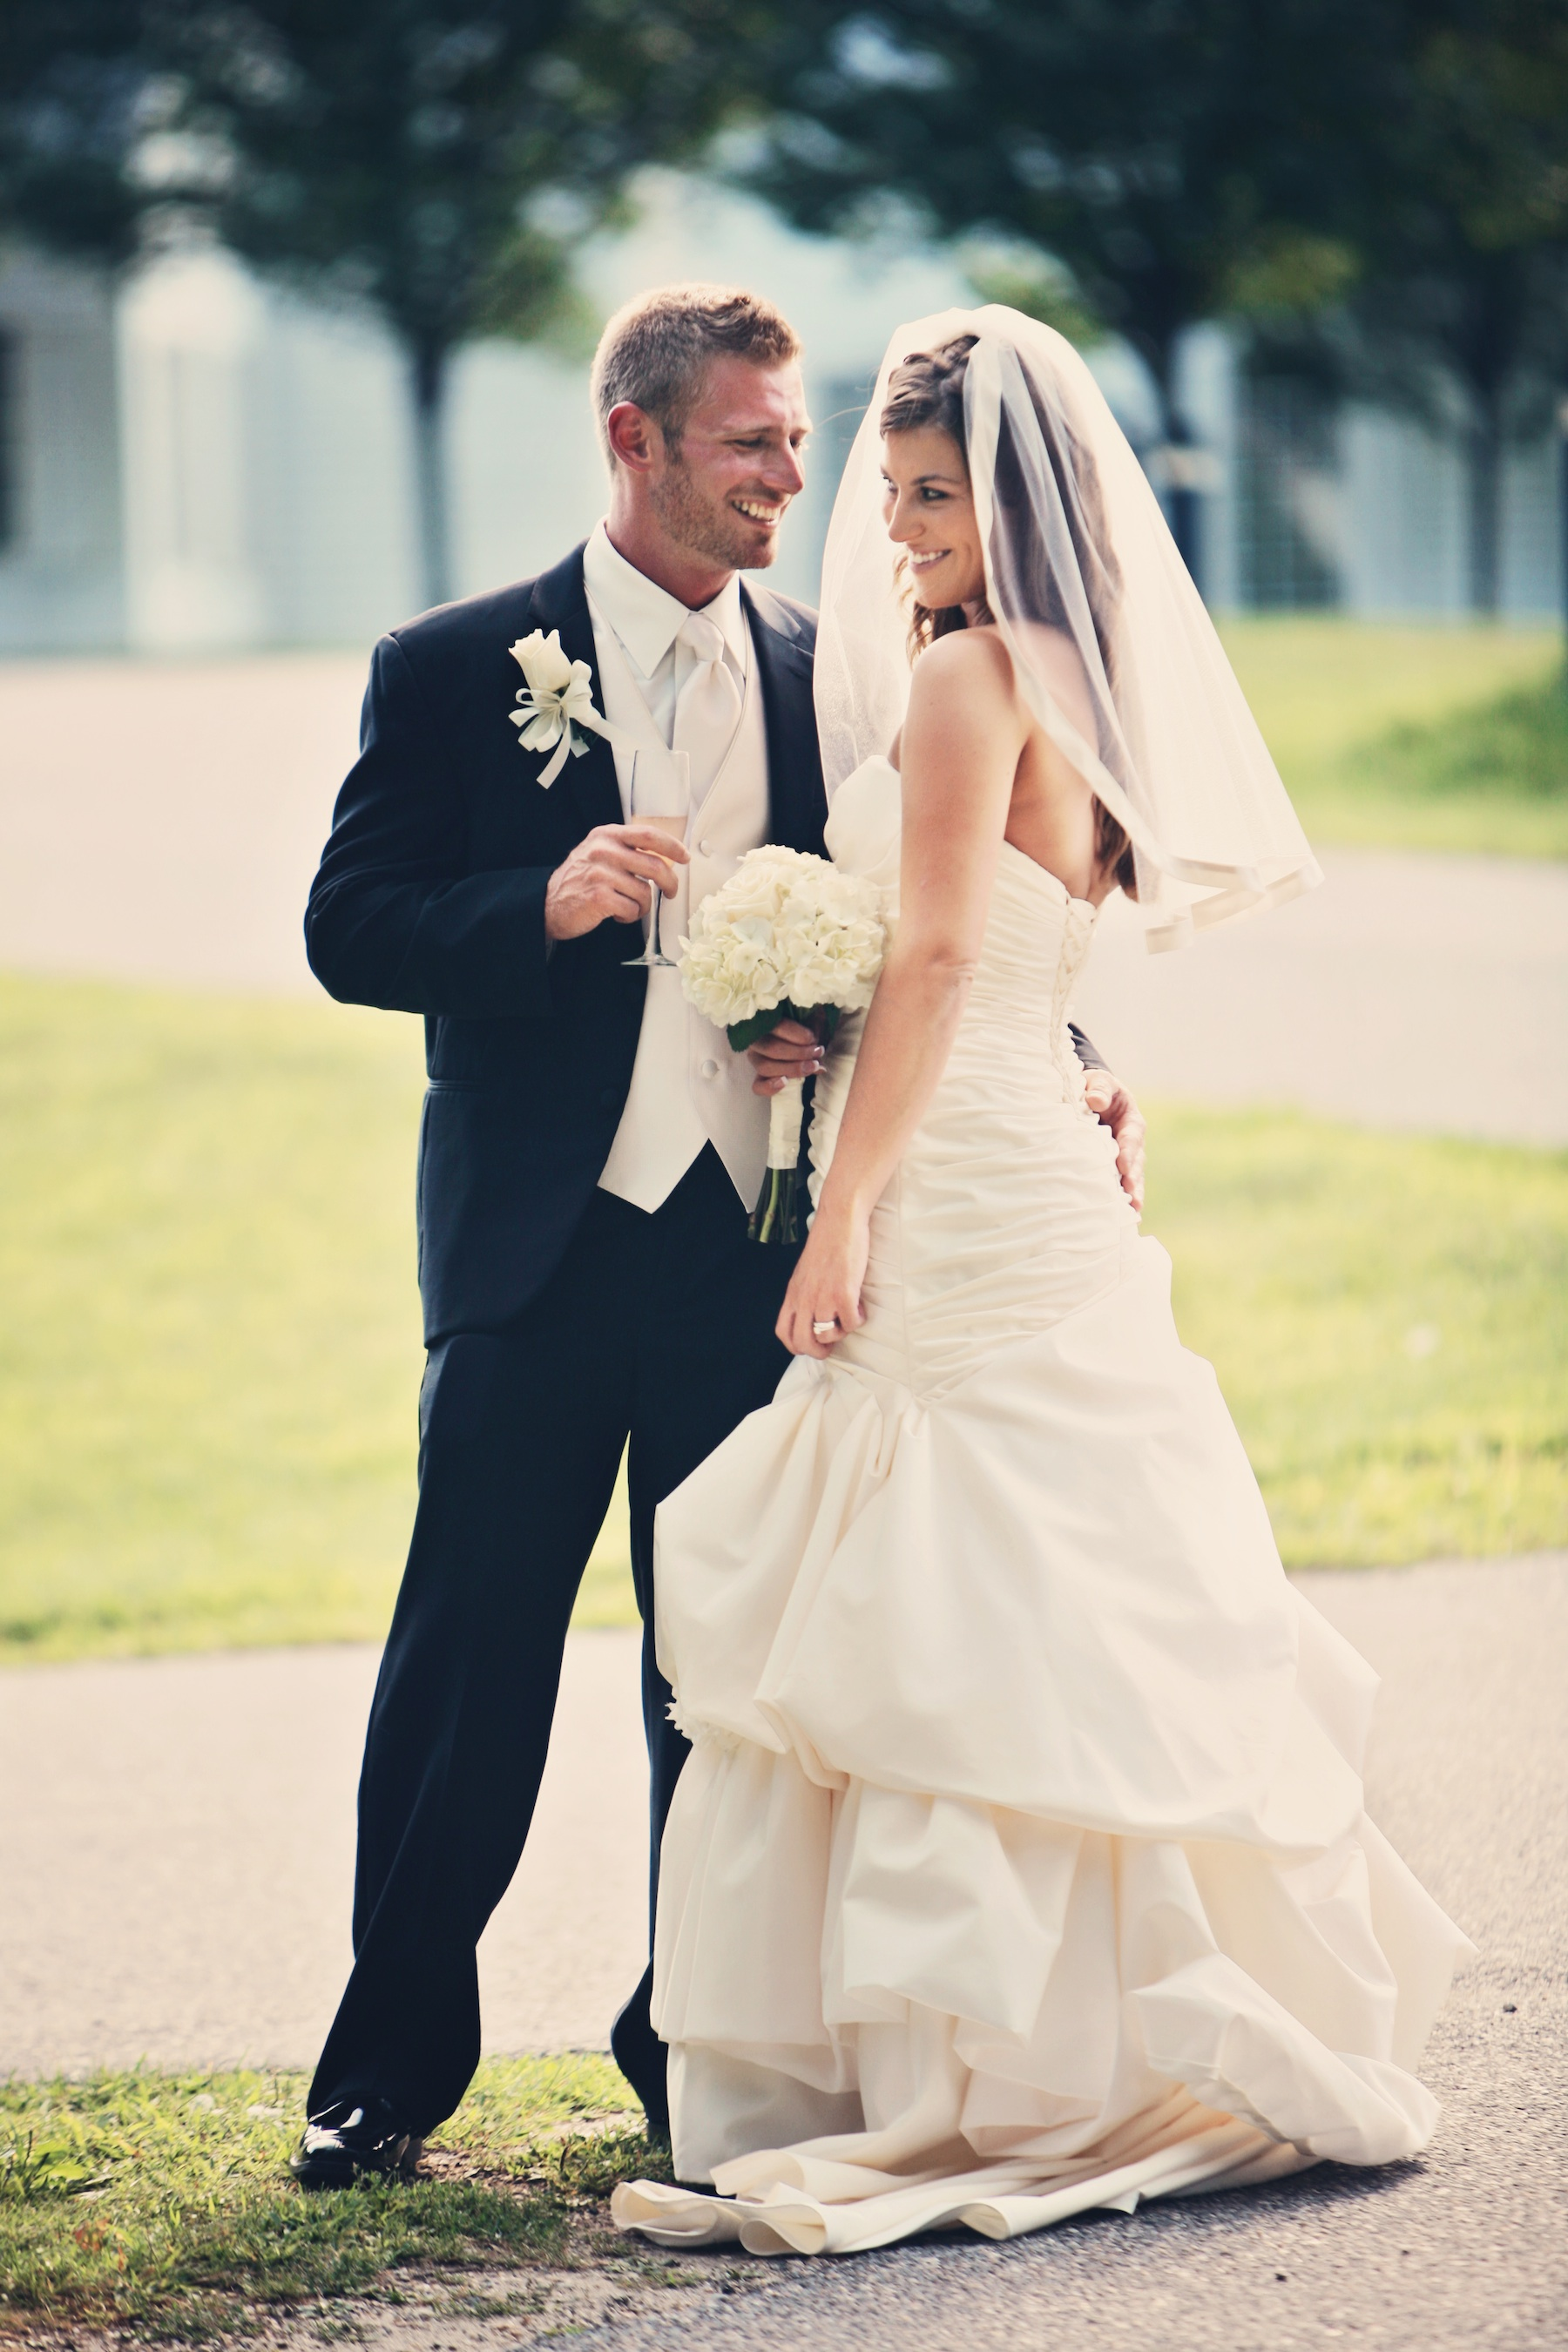 You date When planning with brides British Satin